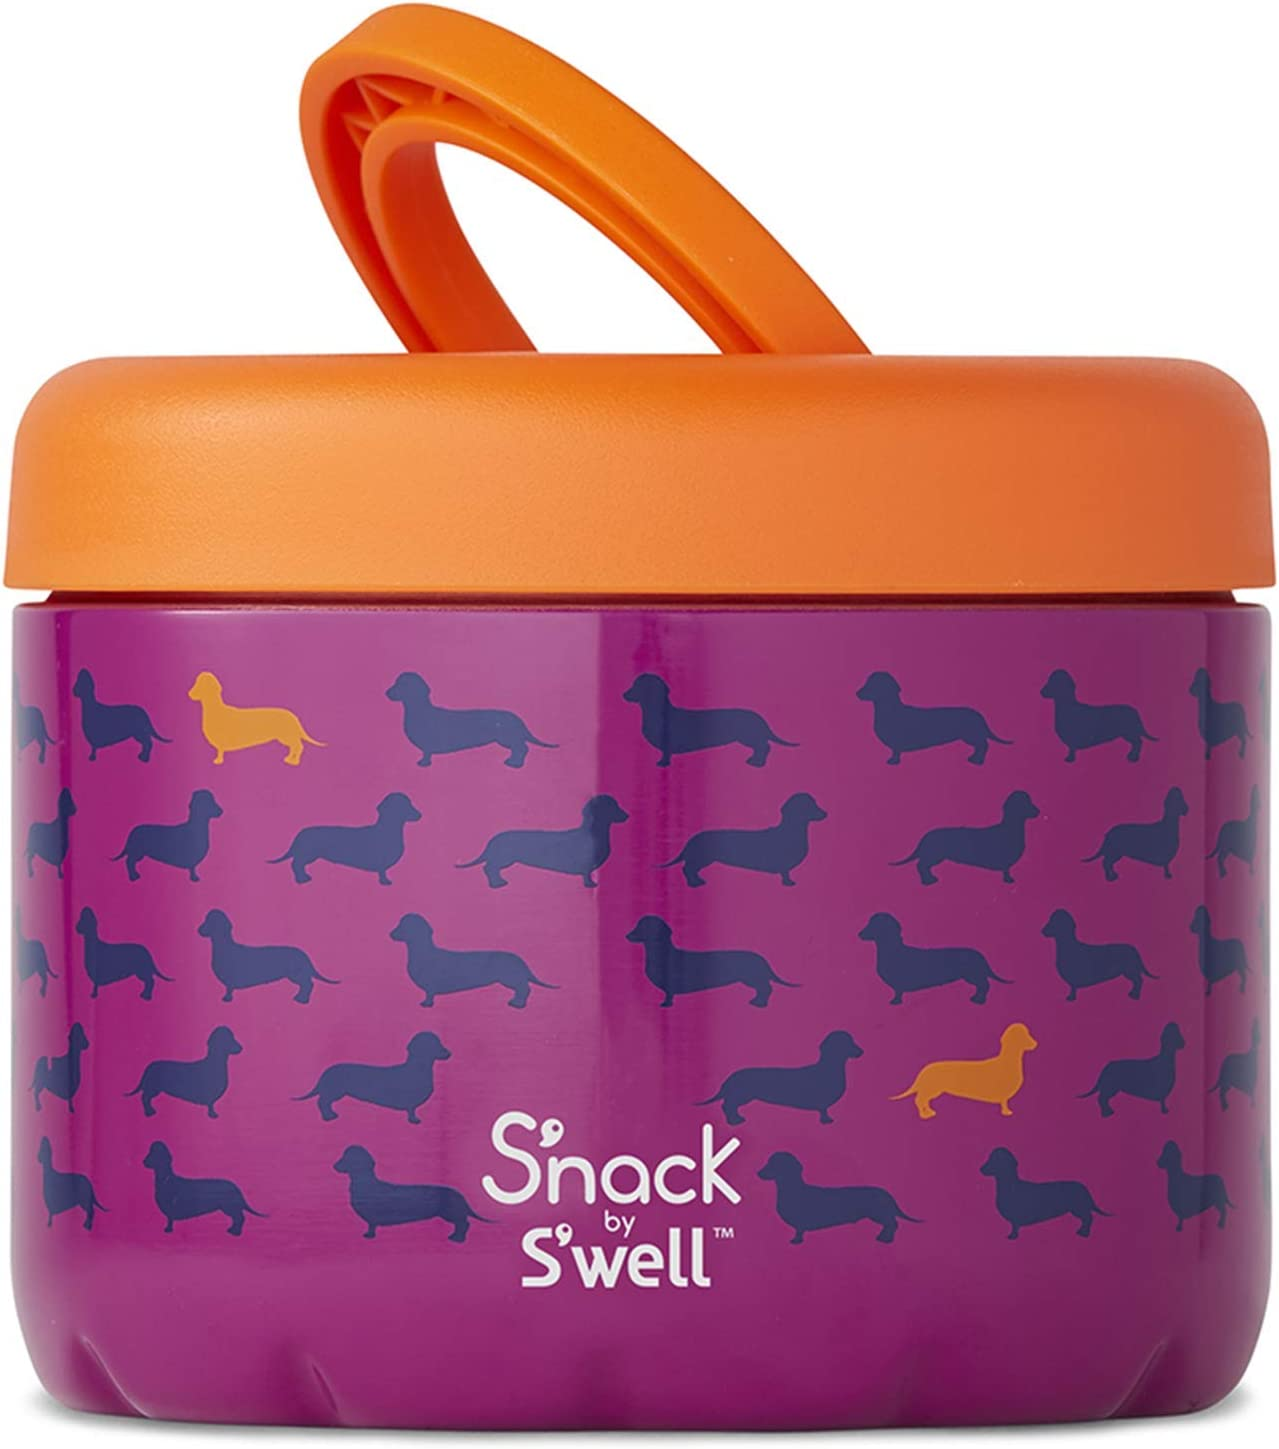 S'nack by S'well Stainless Steel Food Container - 24 Oz – Top Dog - Double-Layered Insulated Bowls Keep Food Cold and Hot - BPA-Free Snack Box